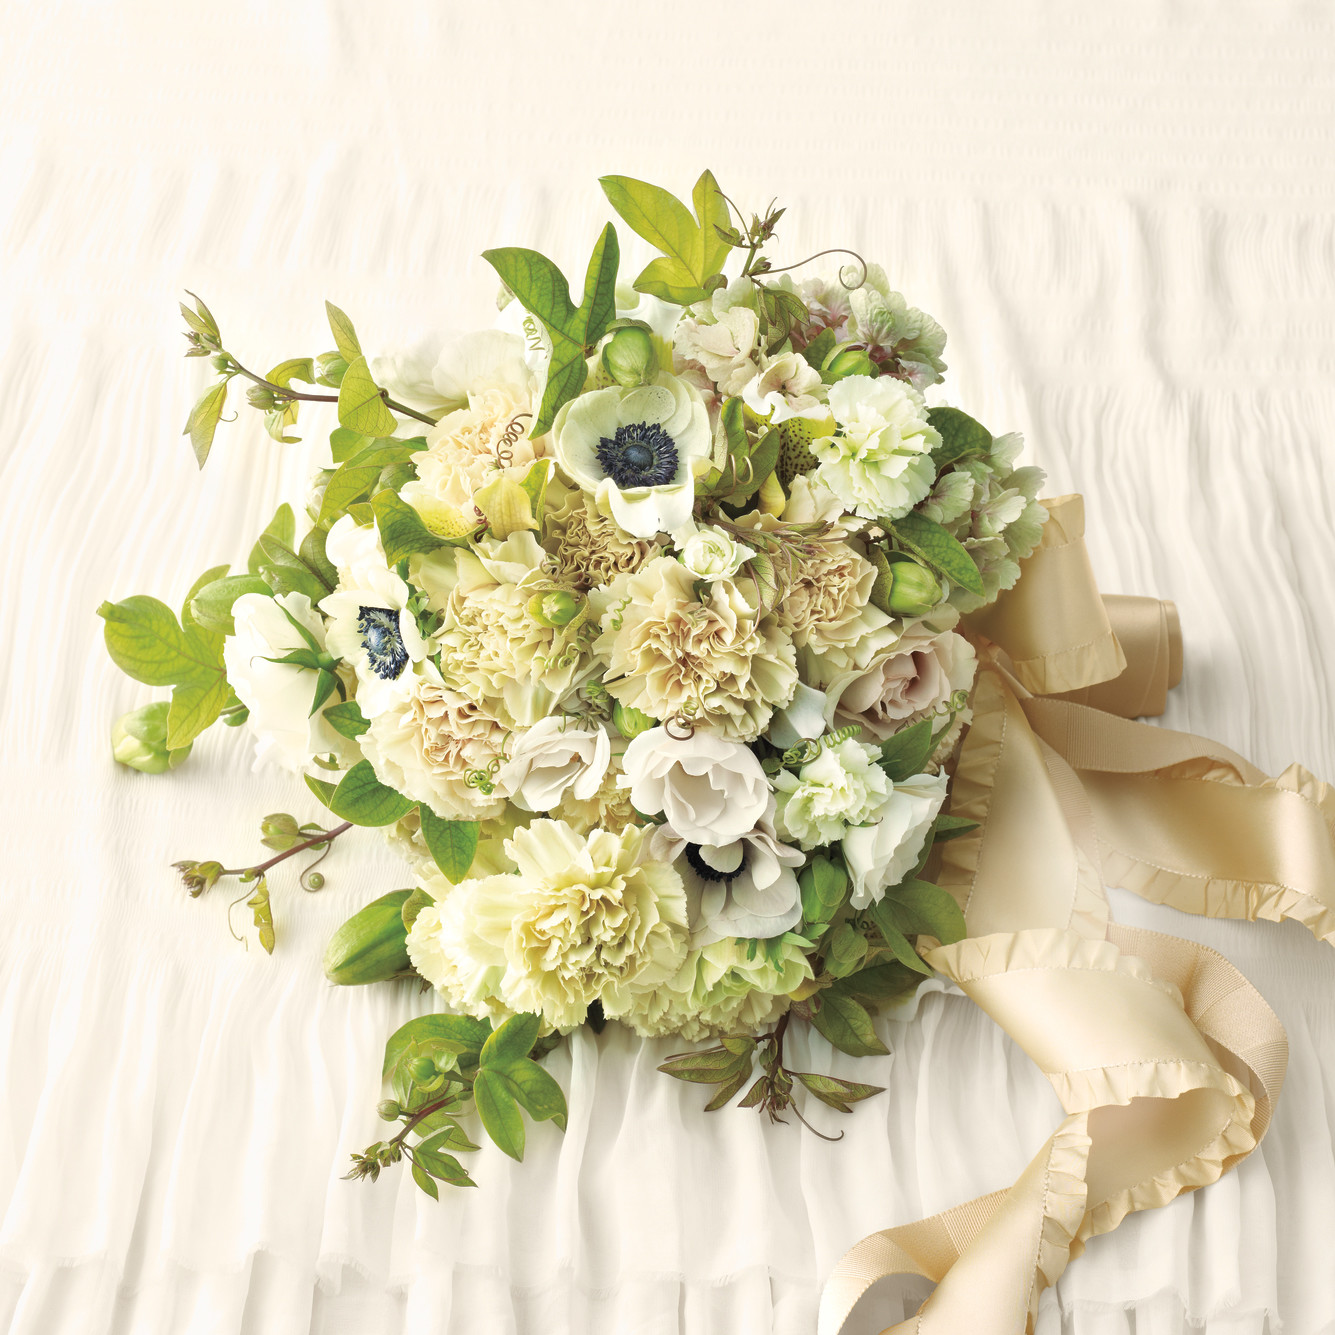 Wedding Flowers: Carnation Wedding Ideas (Yes, It's More Than A Filler